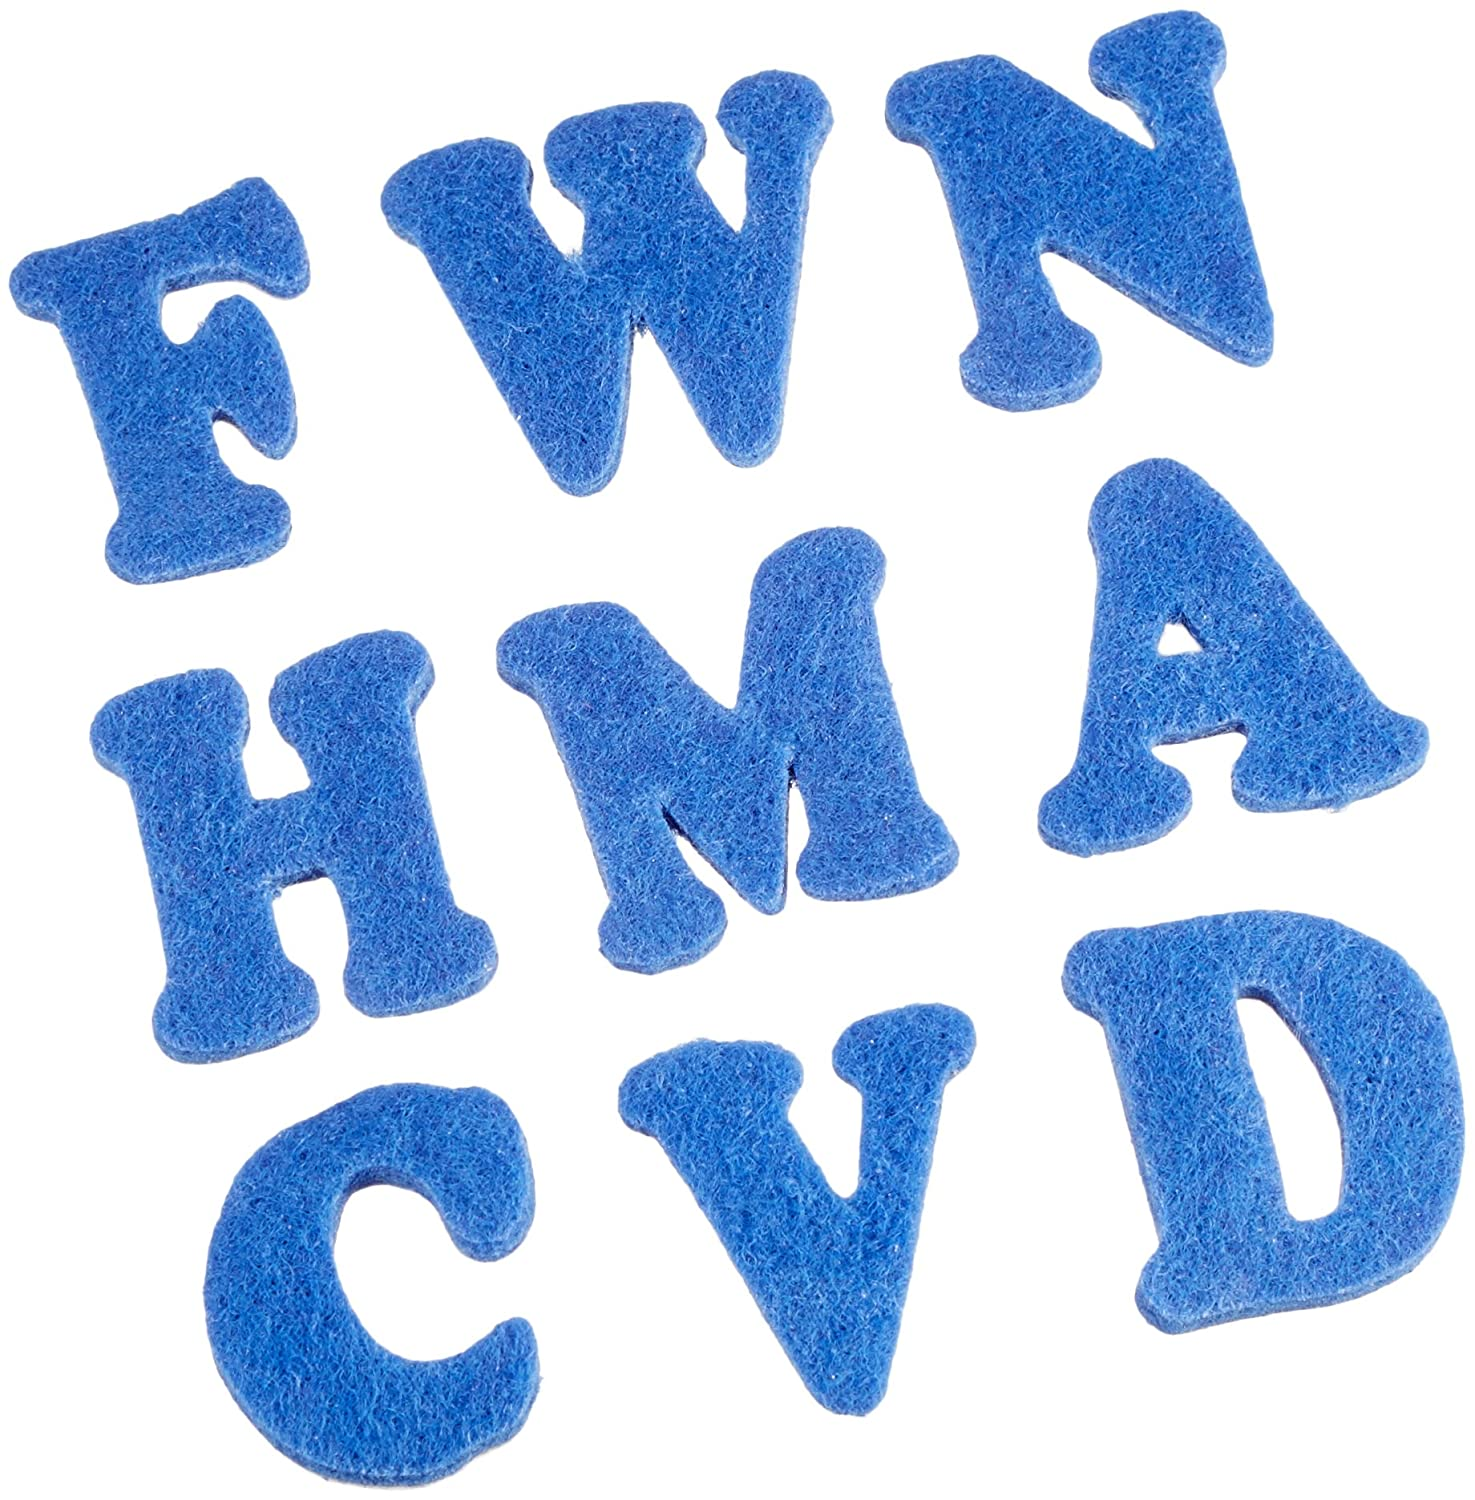 Darice FLT-1012 100 Piece Felties Royal Blue Alphabet Felt Stickers